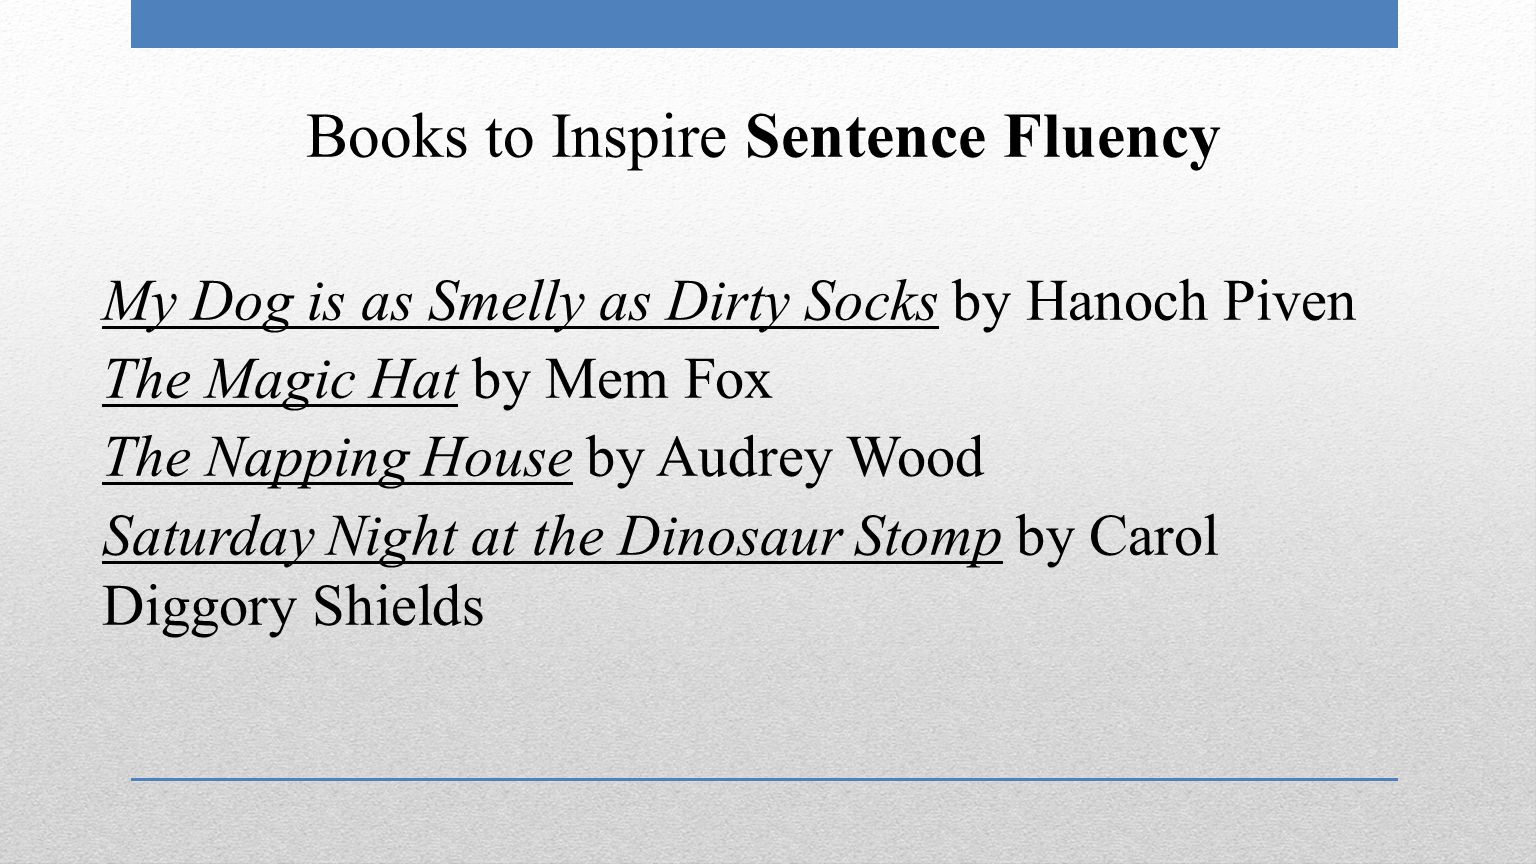 Books to Inspire Sentence Fluency My Dog is as Smelly as Dirty Socks by Hanoch Piven The Magic Hat by Mem Fox The Napping House by Audrey Wood Saturday Night at the Dinosaur Stomp by Carol Diggory Shields